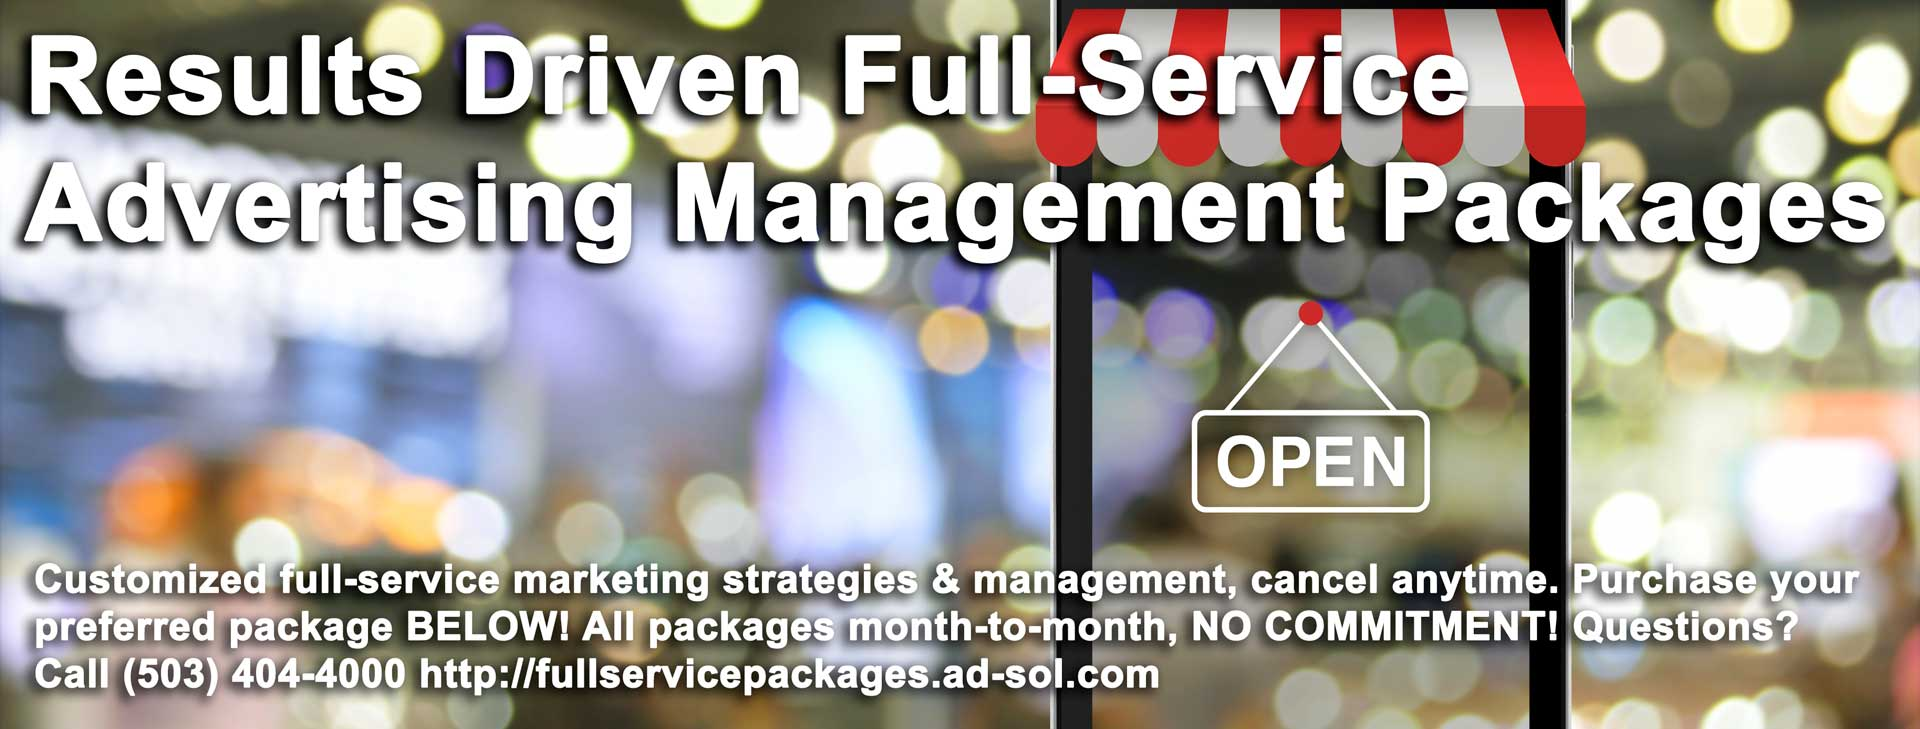 Results Driven Full-Service Advertising Management Packages